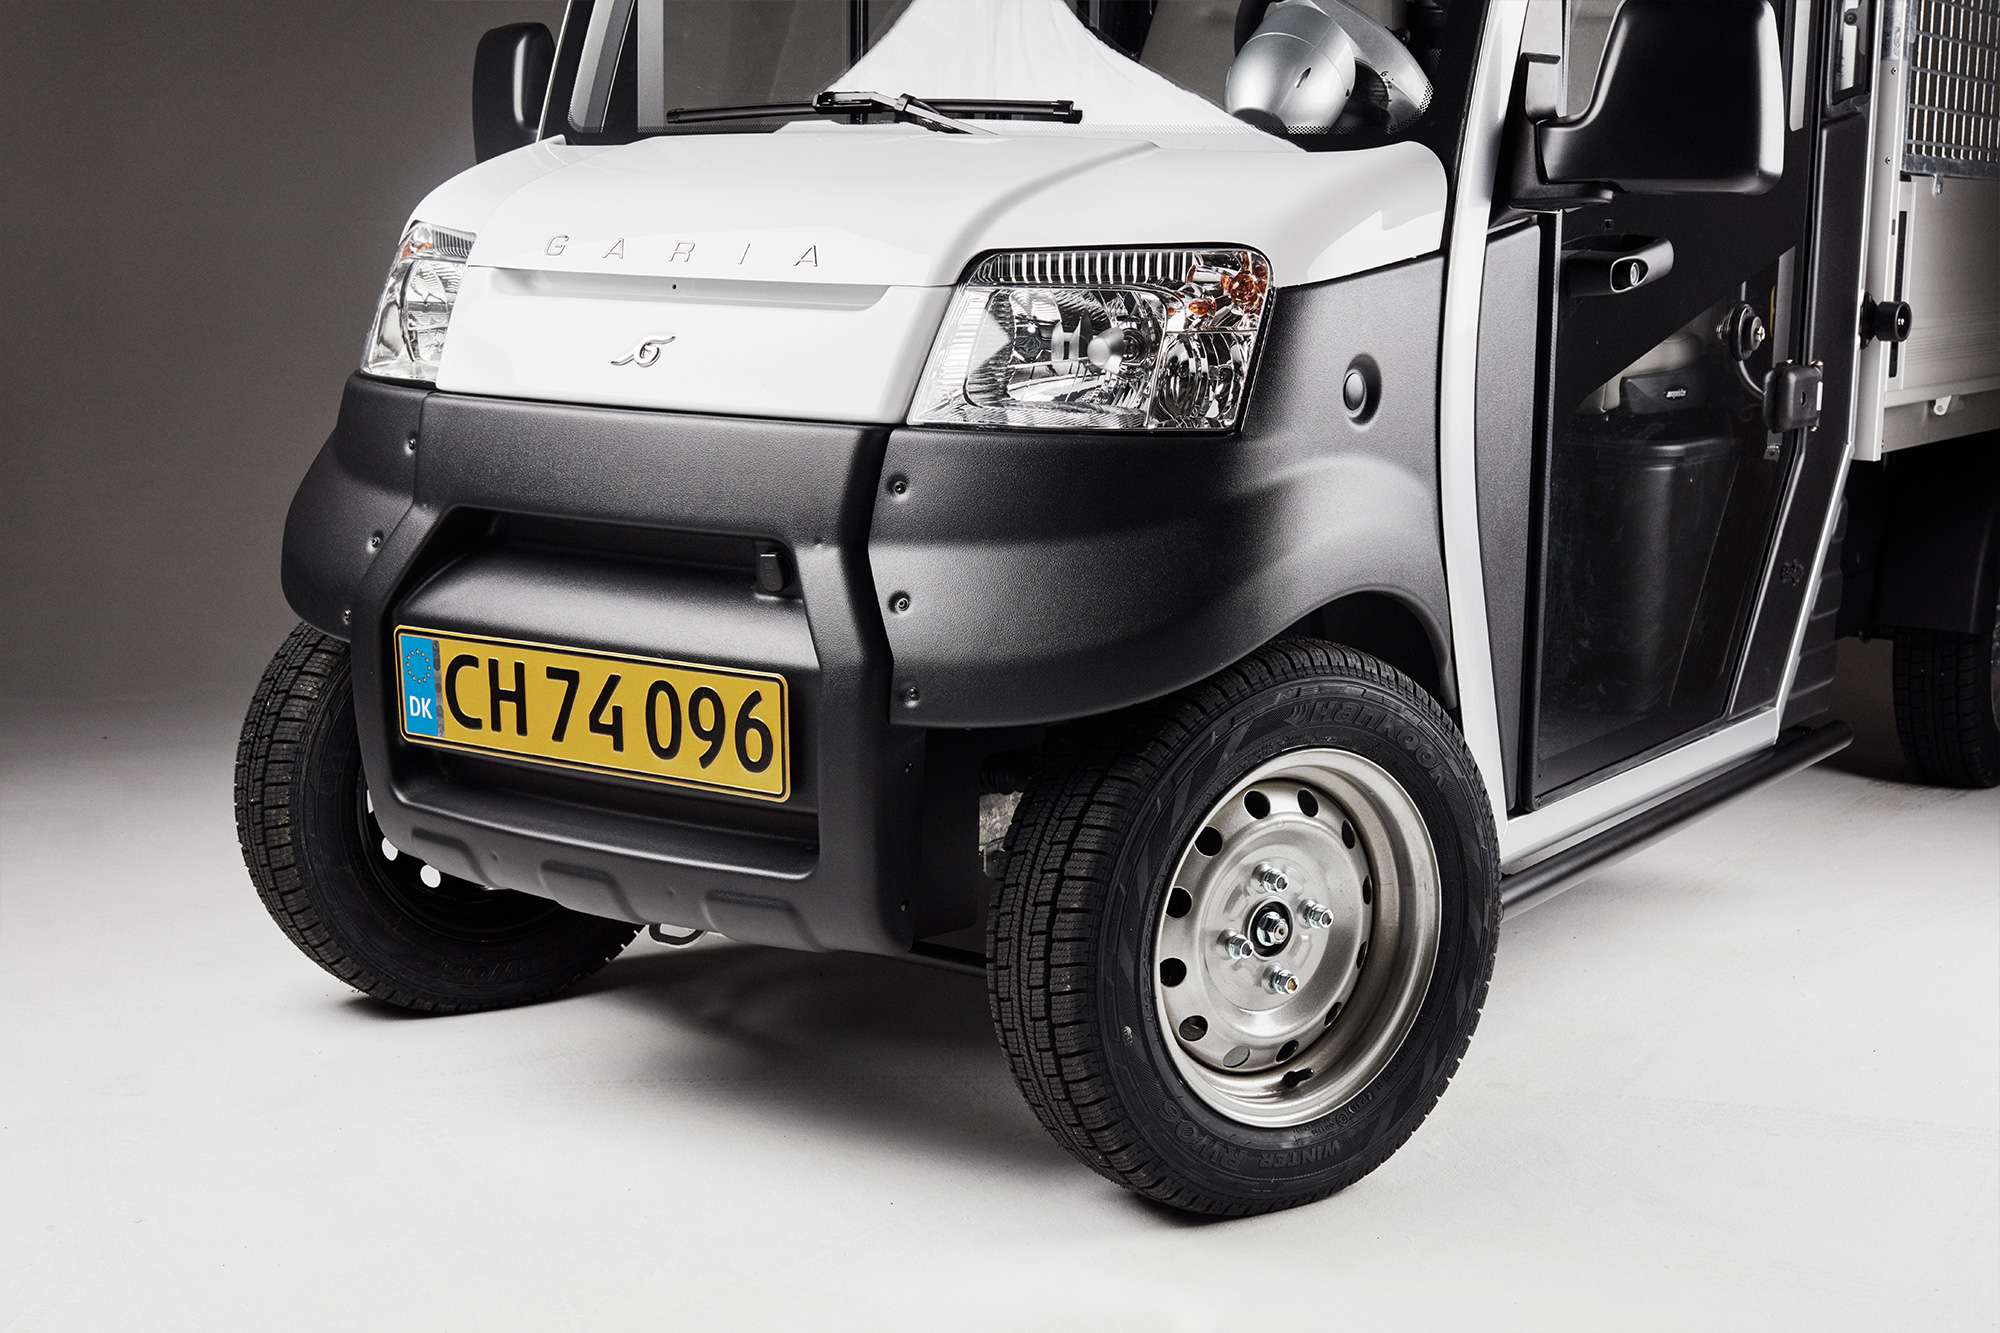 Garia Utility Features street legal front light